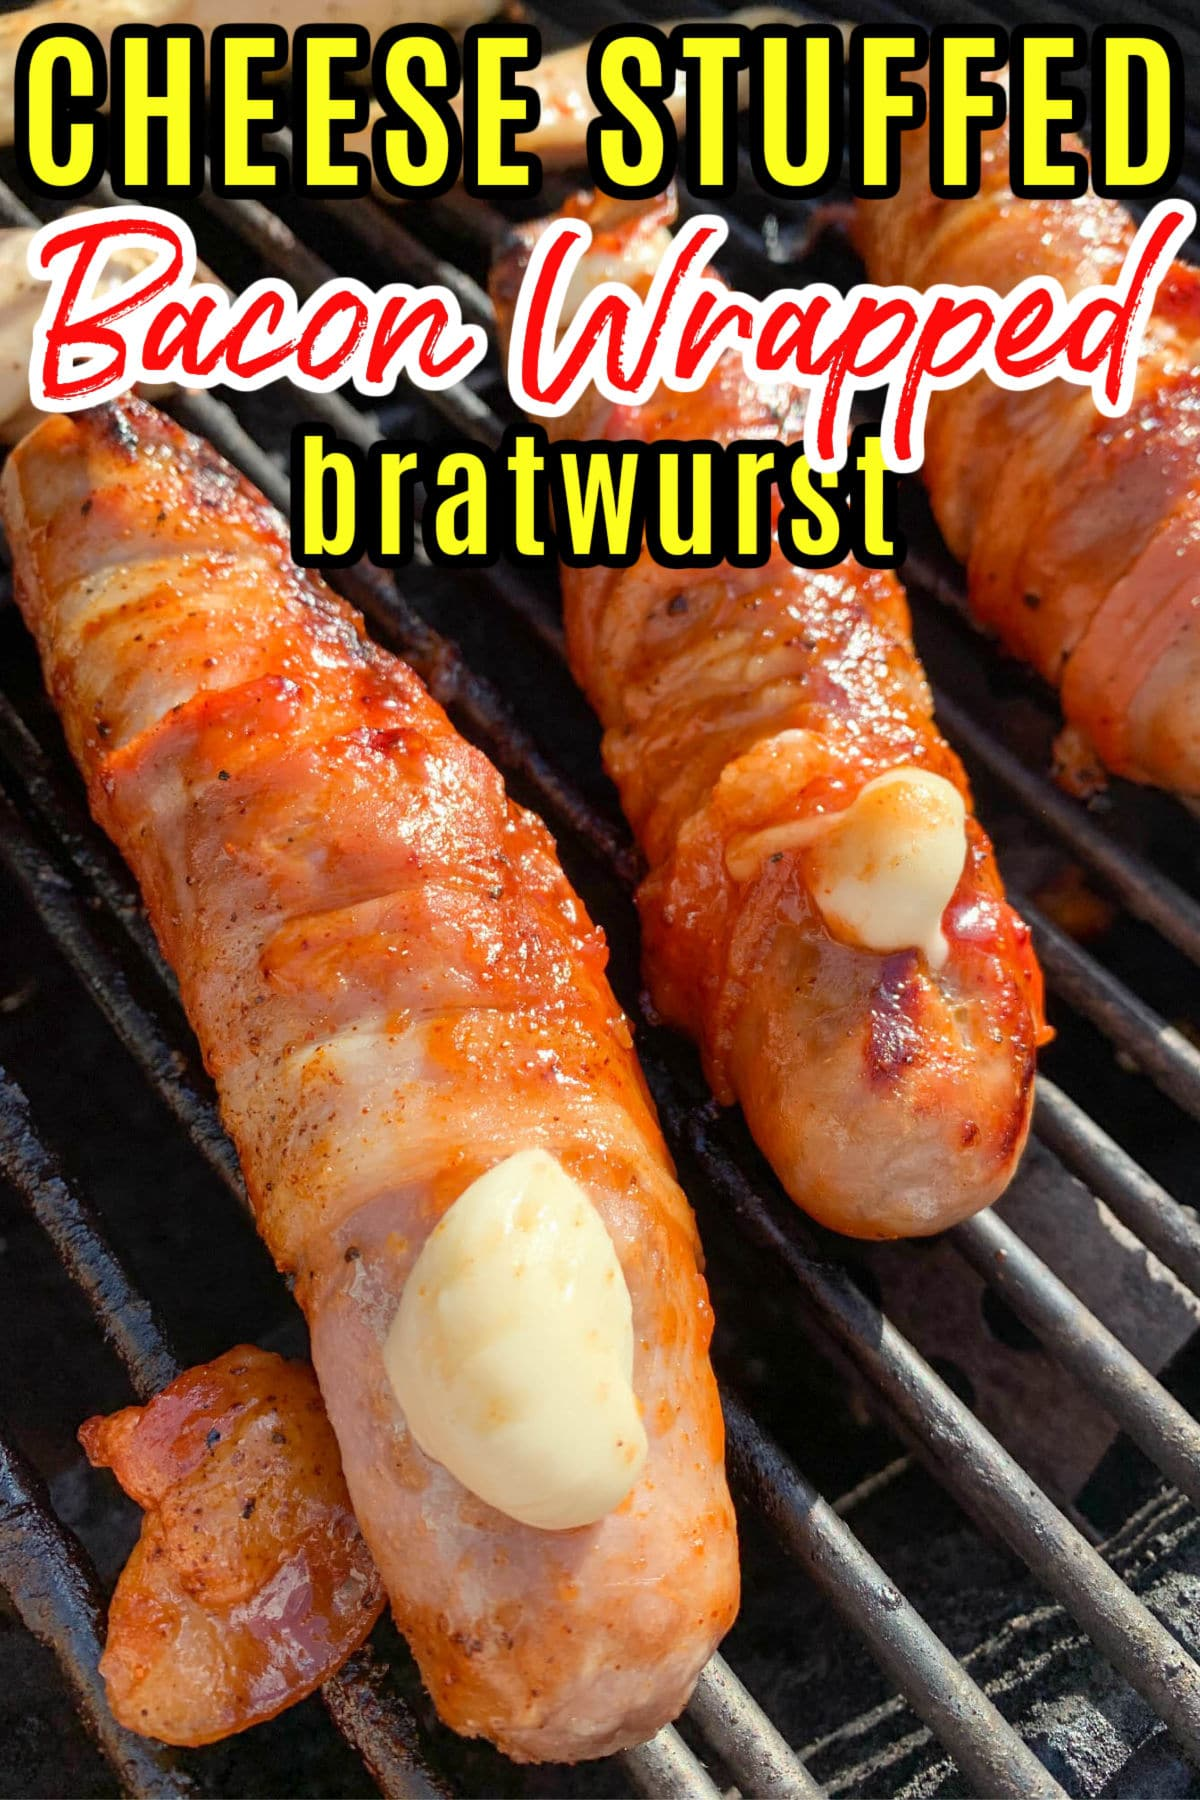 Cheese-stuffed bacon wrapped bratwurst are amazingly delicious on the grill! I saw this on TikTok and HAD to make them at home. So easy to make too - just takes 15 minutes of prep and it's worth it!  via @foodhussy